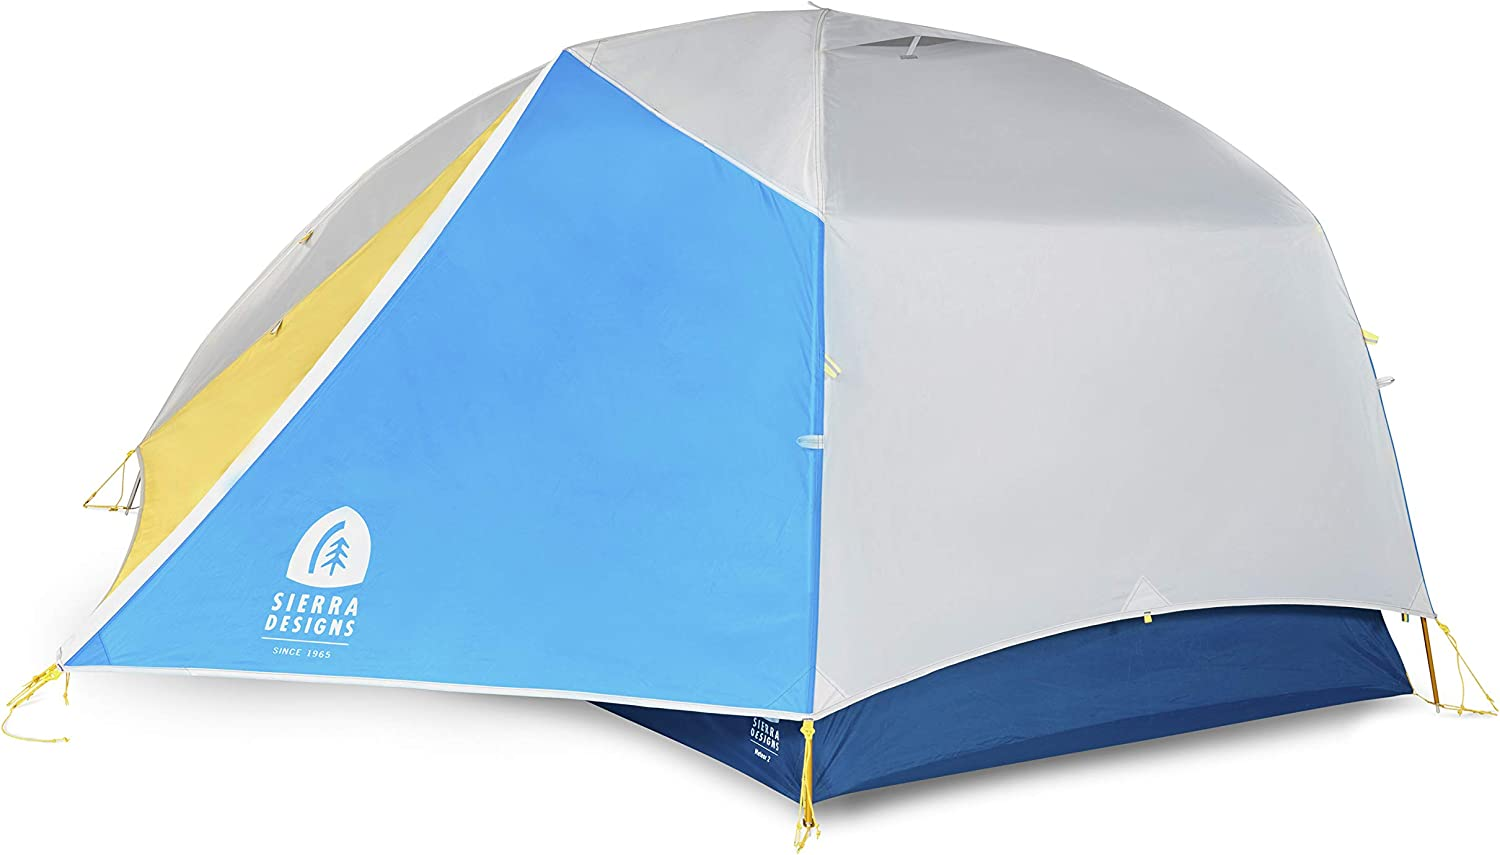 Sierra Designs Meteor 2/3/4 Person Backpacking Tents